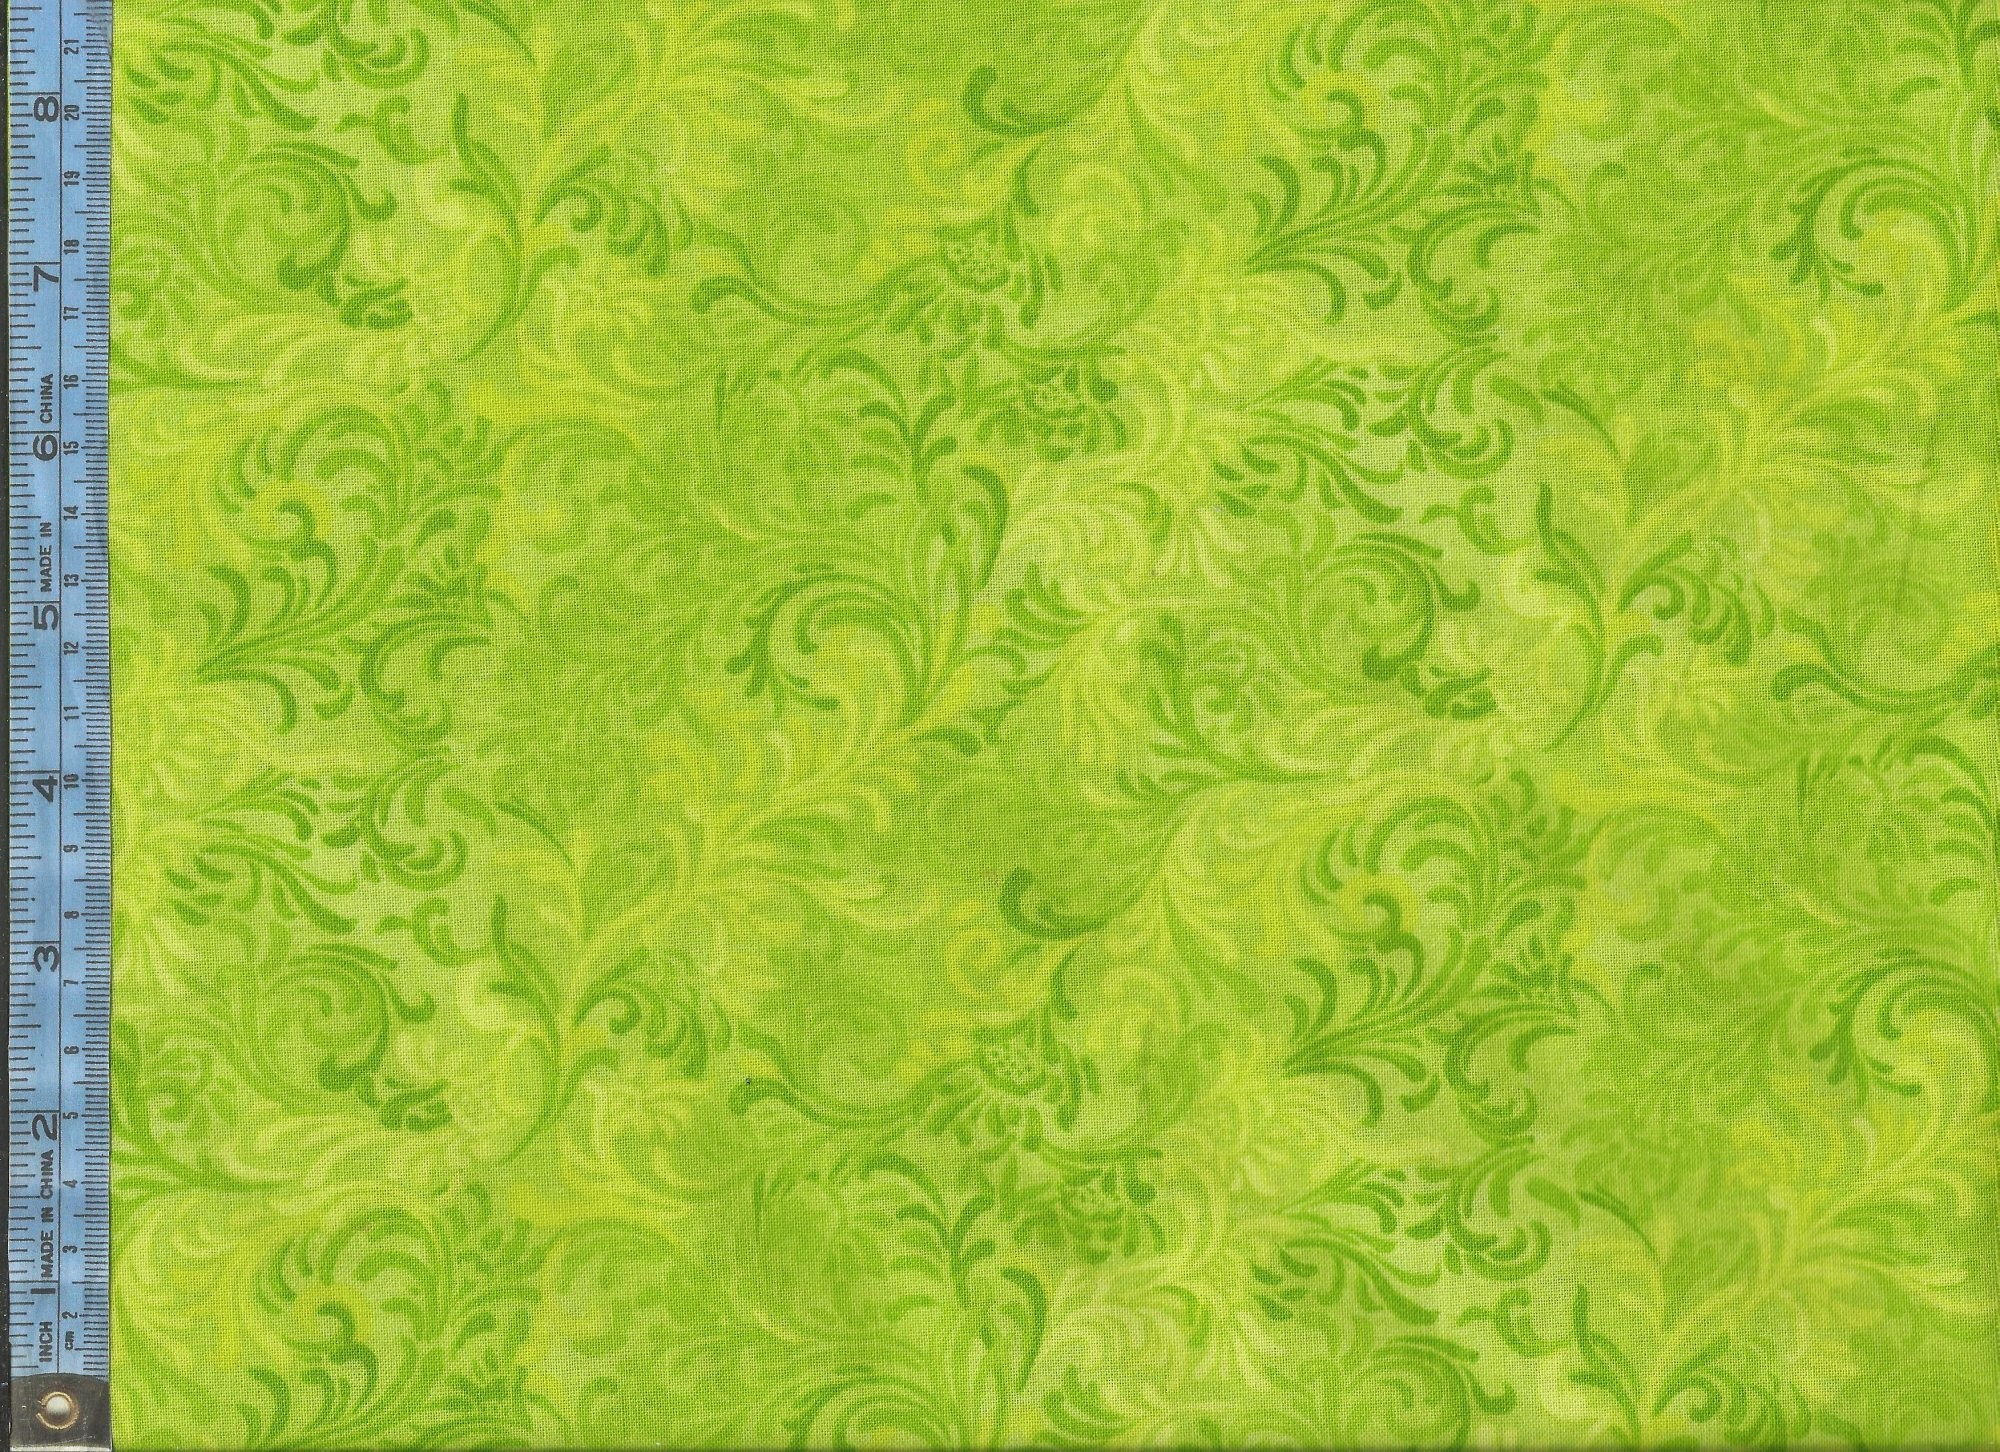 2000x1452 Essentials Embellishment - (51000-705) yellow-green lime and green on light